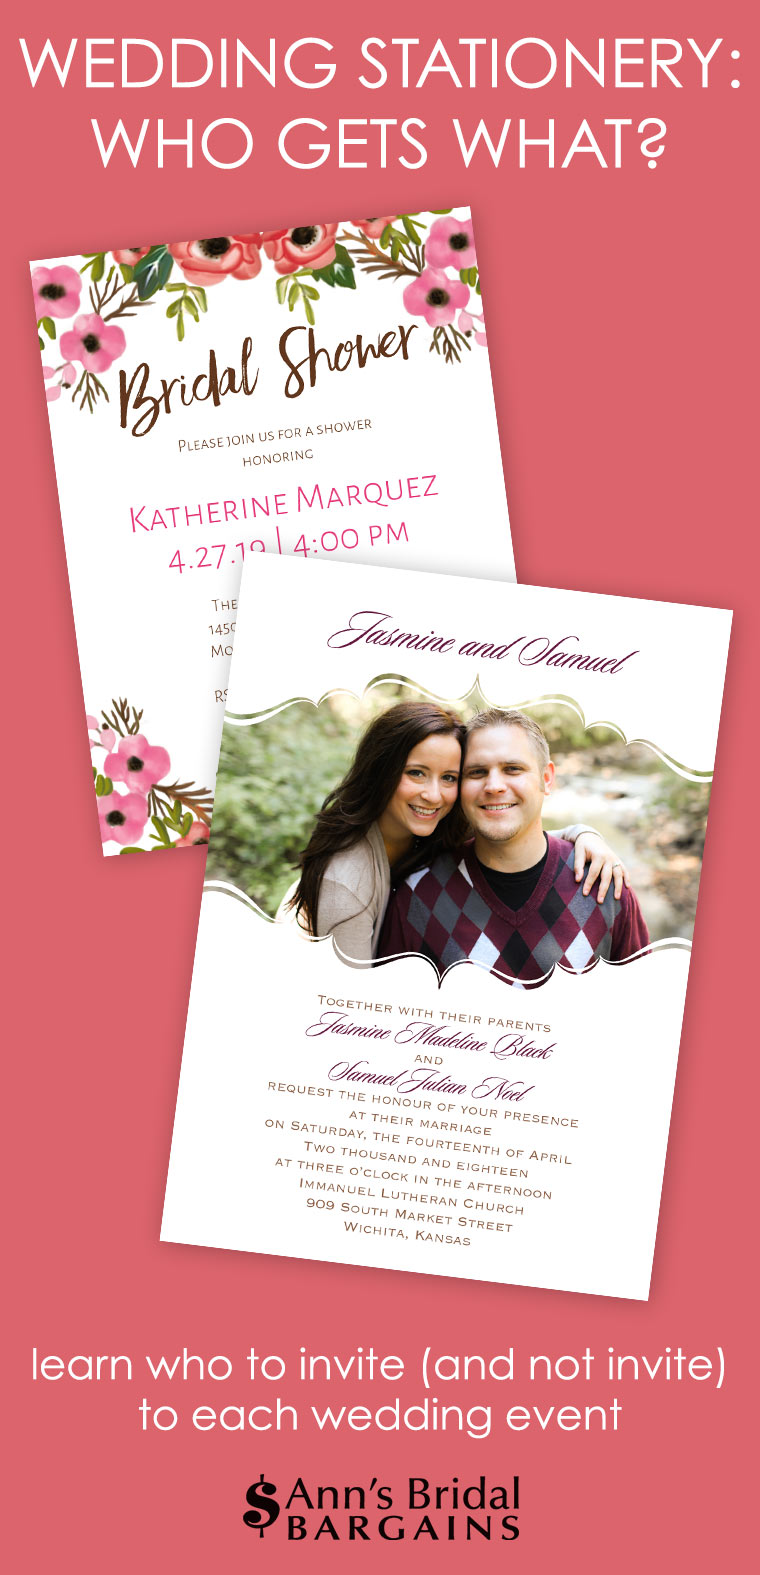 Wedding Stationery: Who gets what?